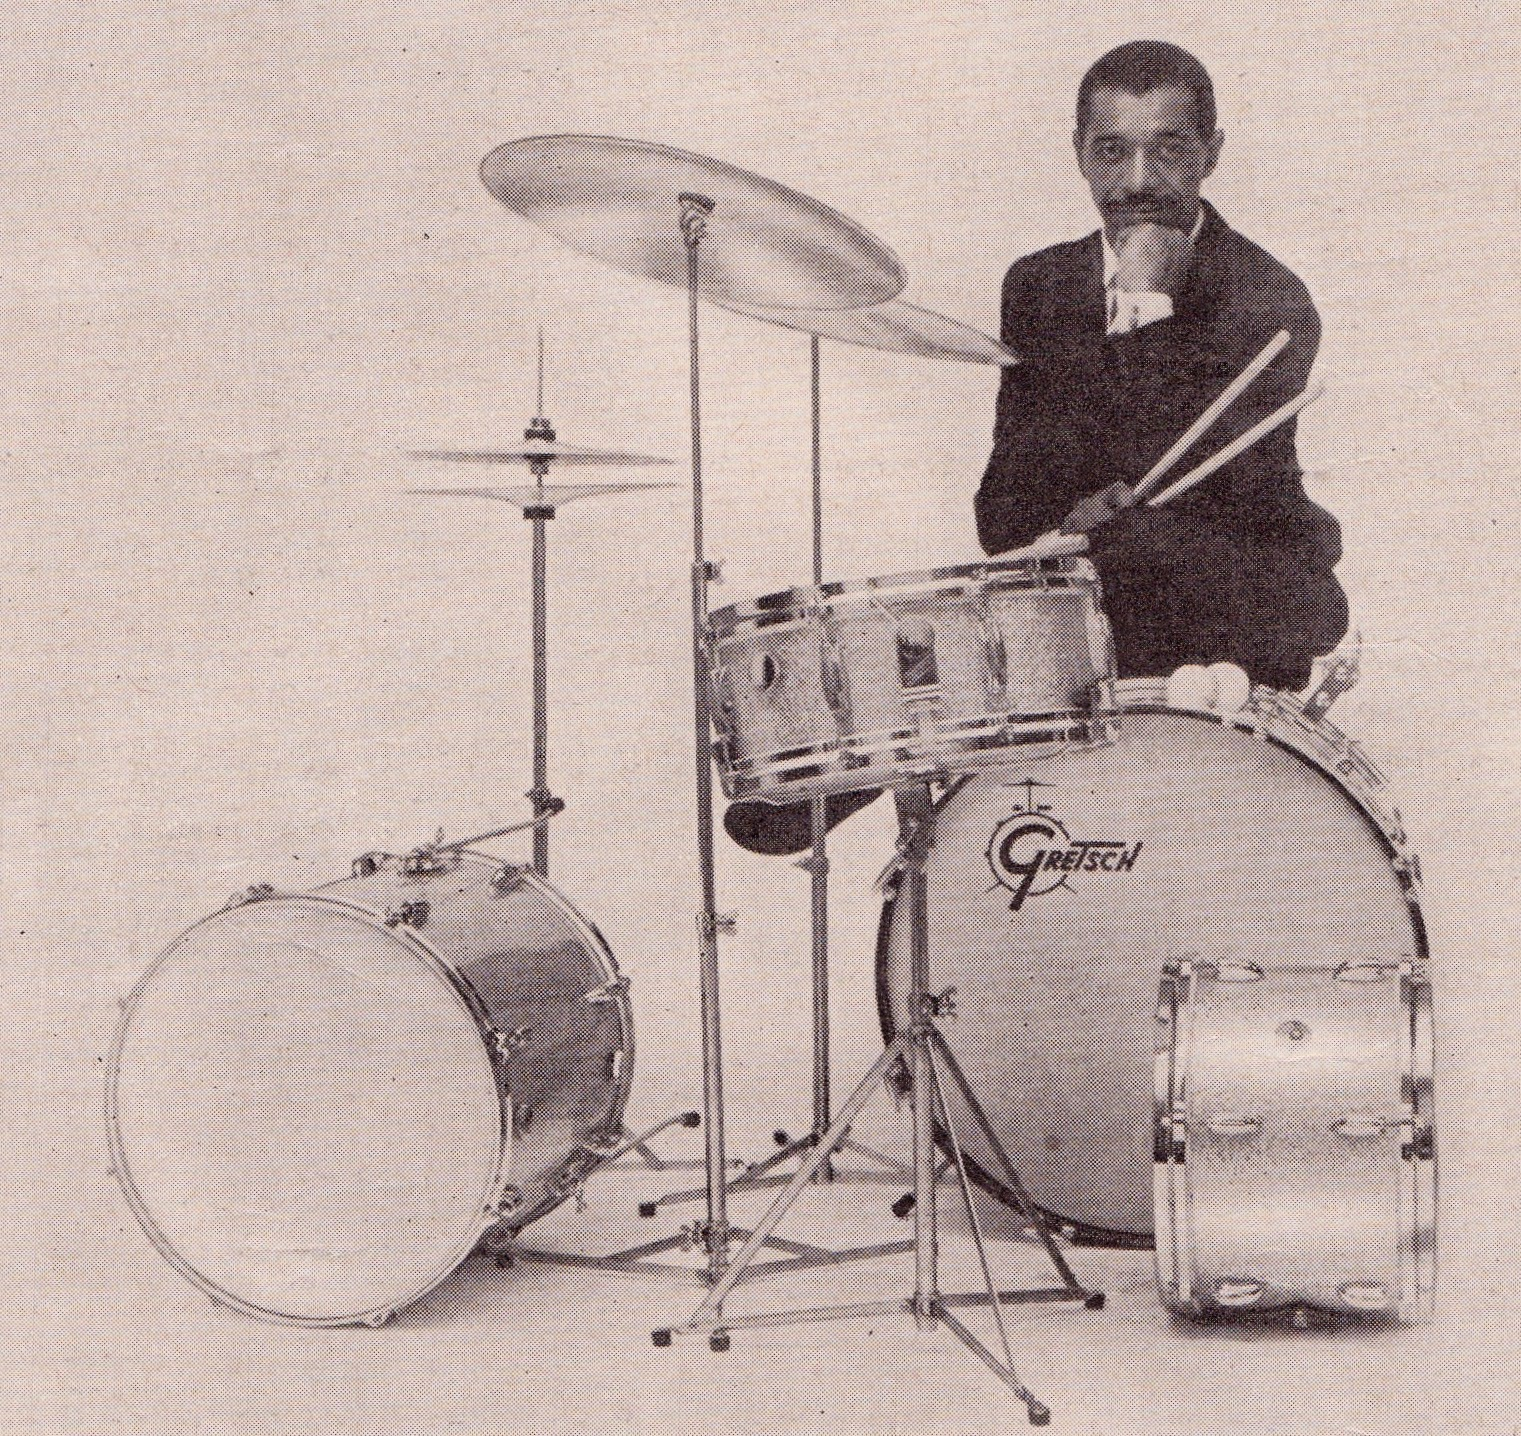 In The 1950s And 60s World Of Drumming Was Changing Dramatically With Advent Rock Nroll